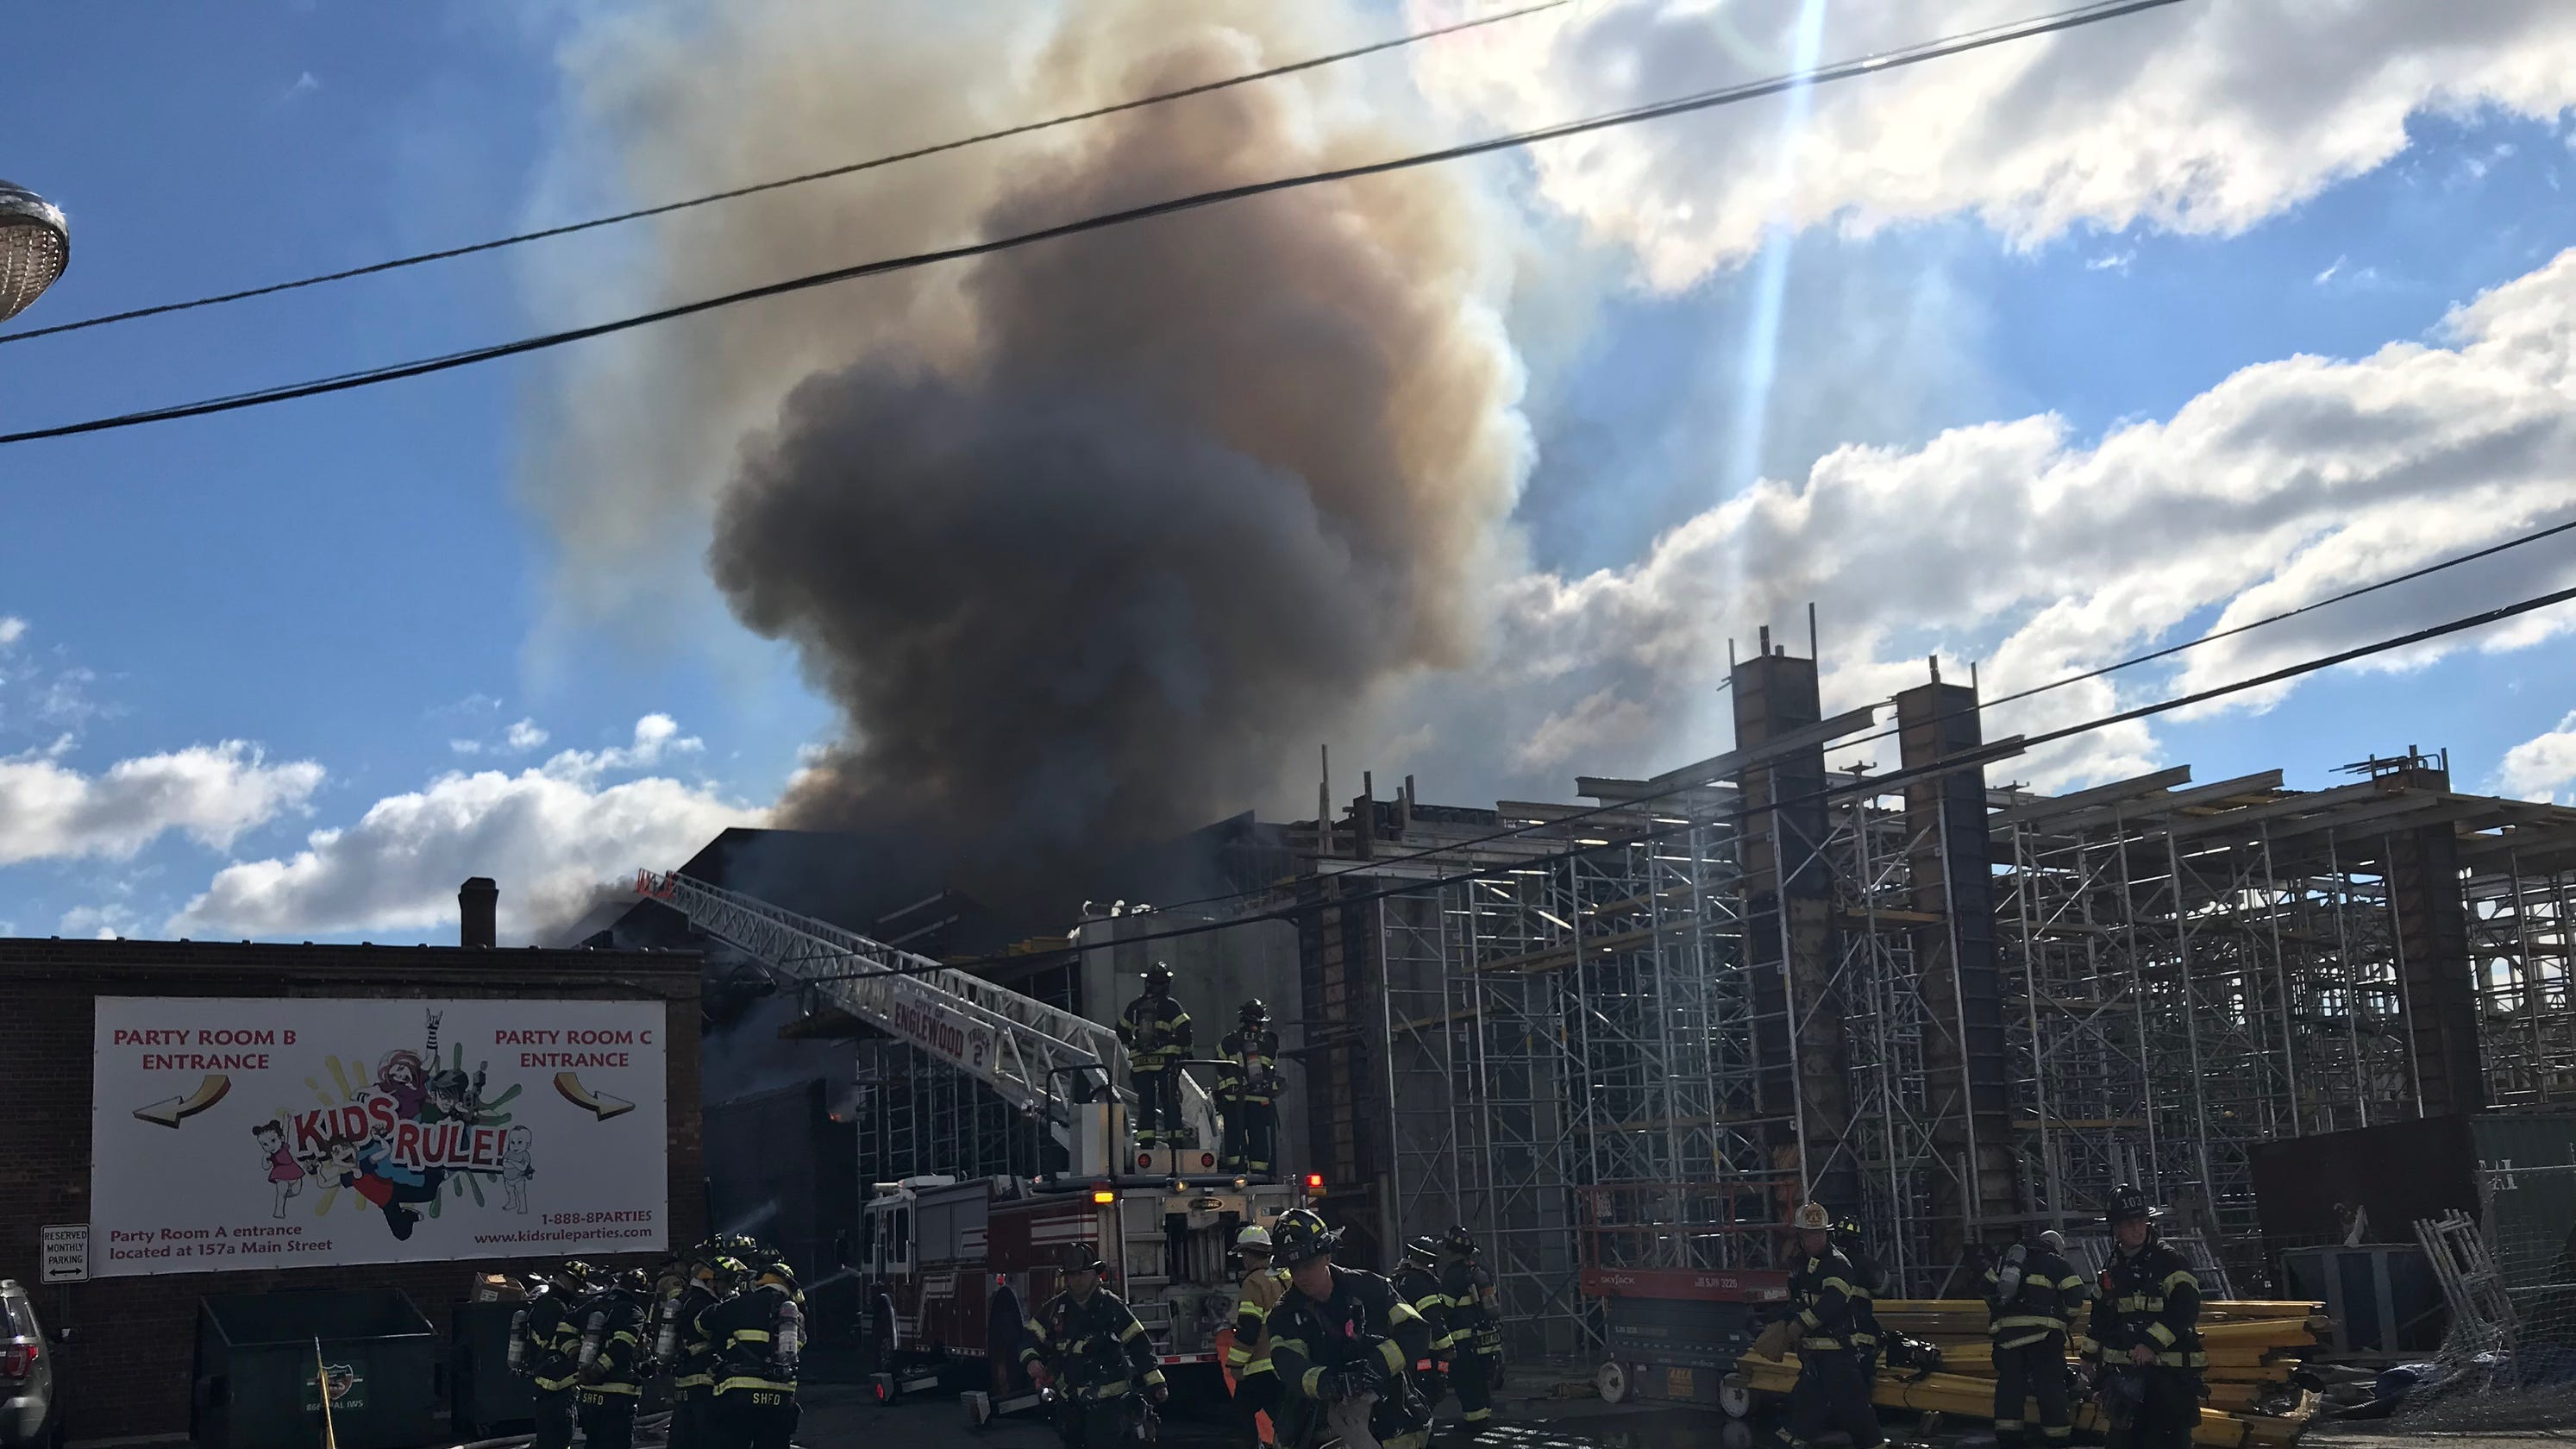 Enjoyable Hackensack Nj Fire What We Know About The Furniture Store Blaze Download Free Architecture Designs Scobabritishbridgeorg